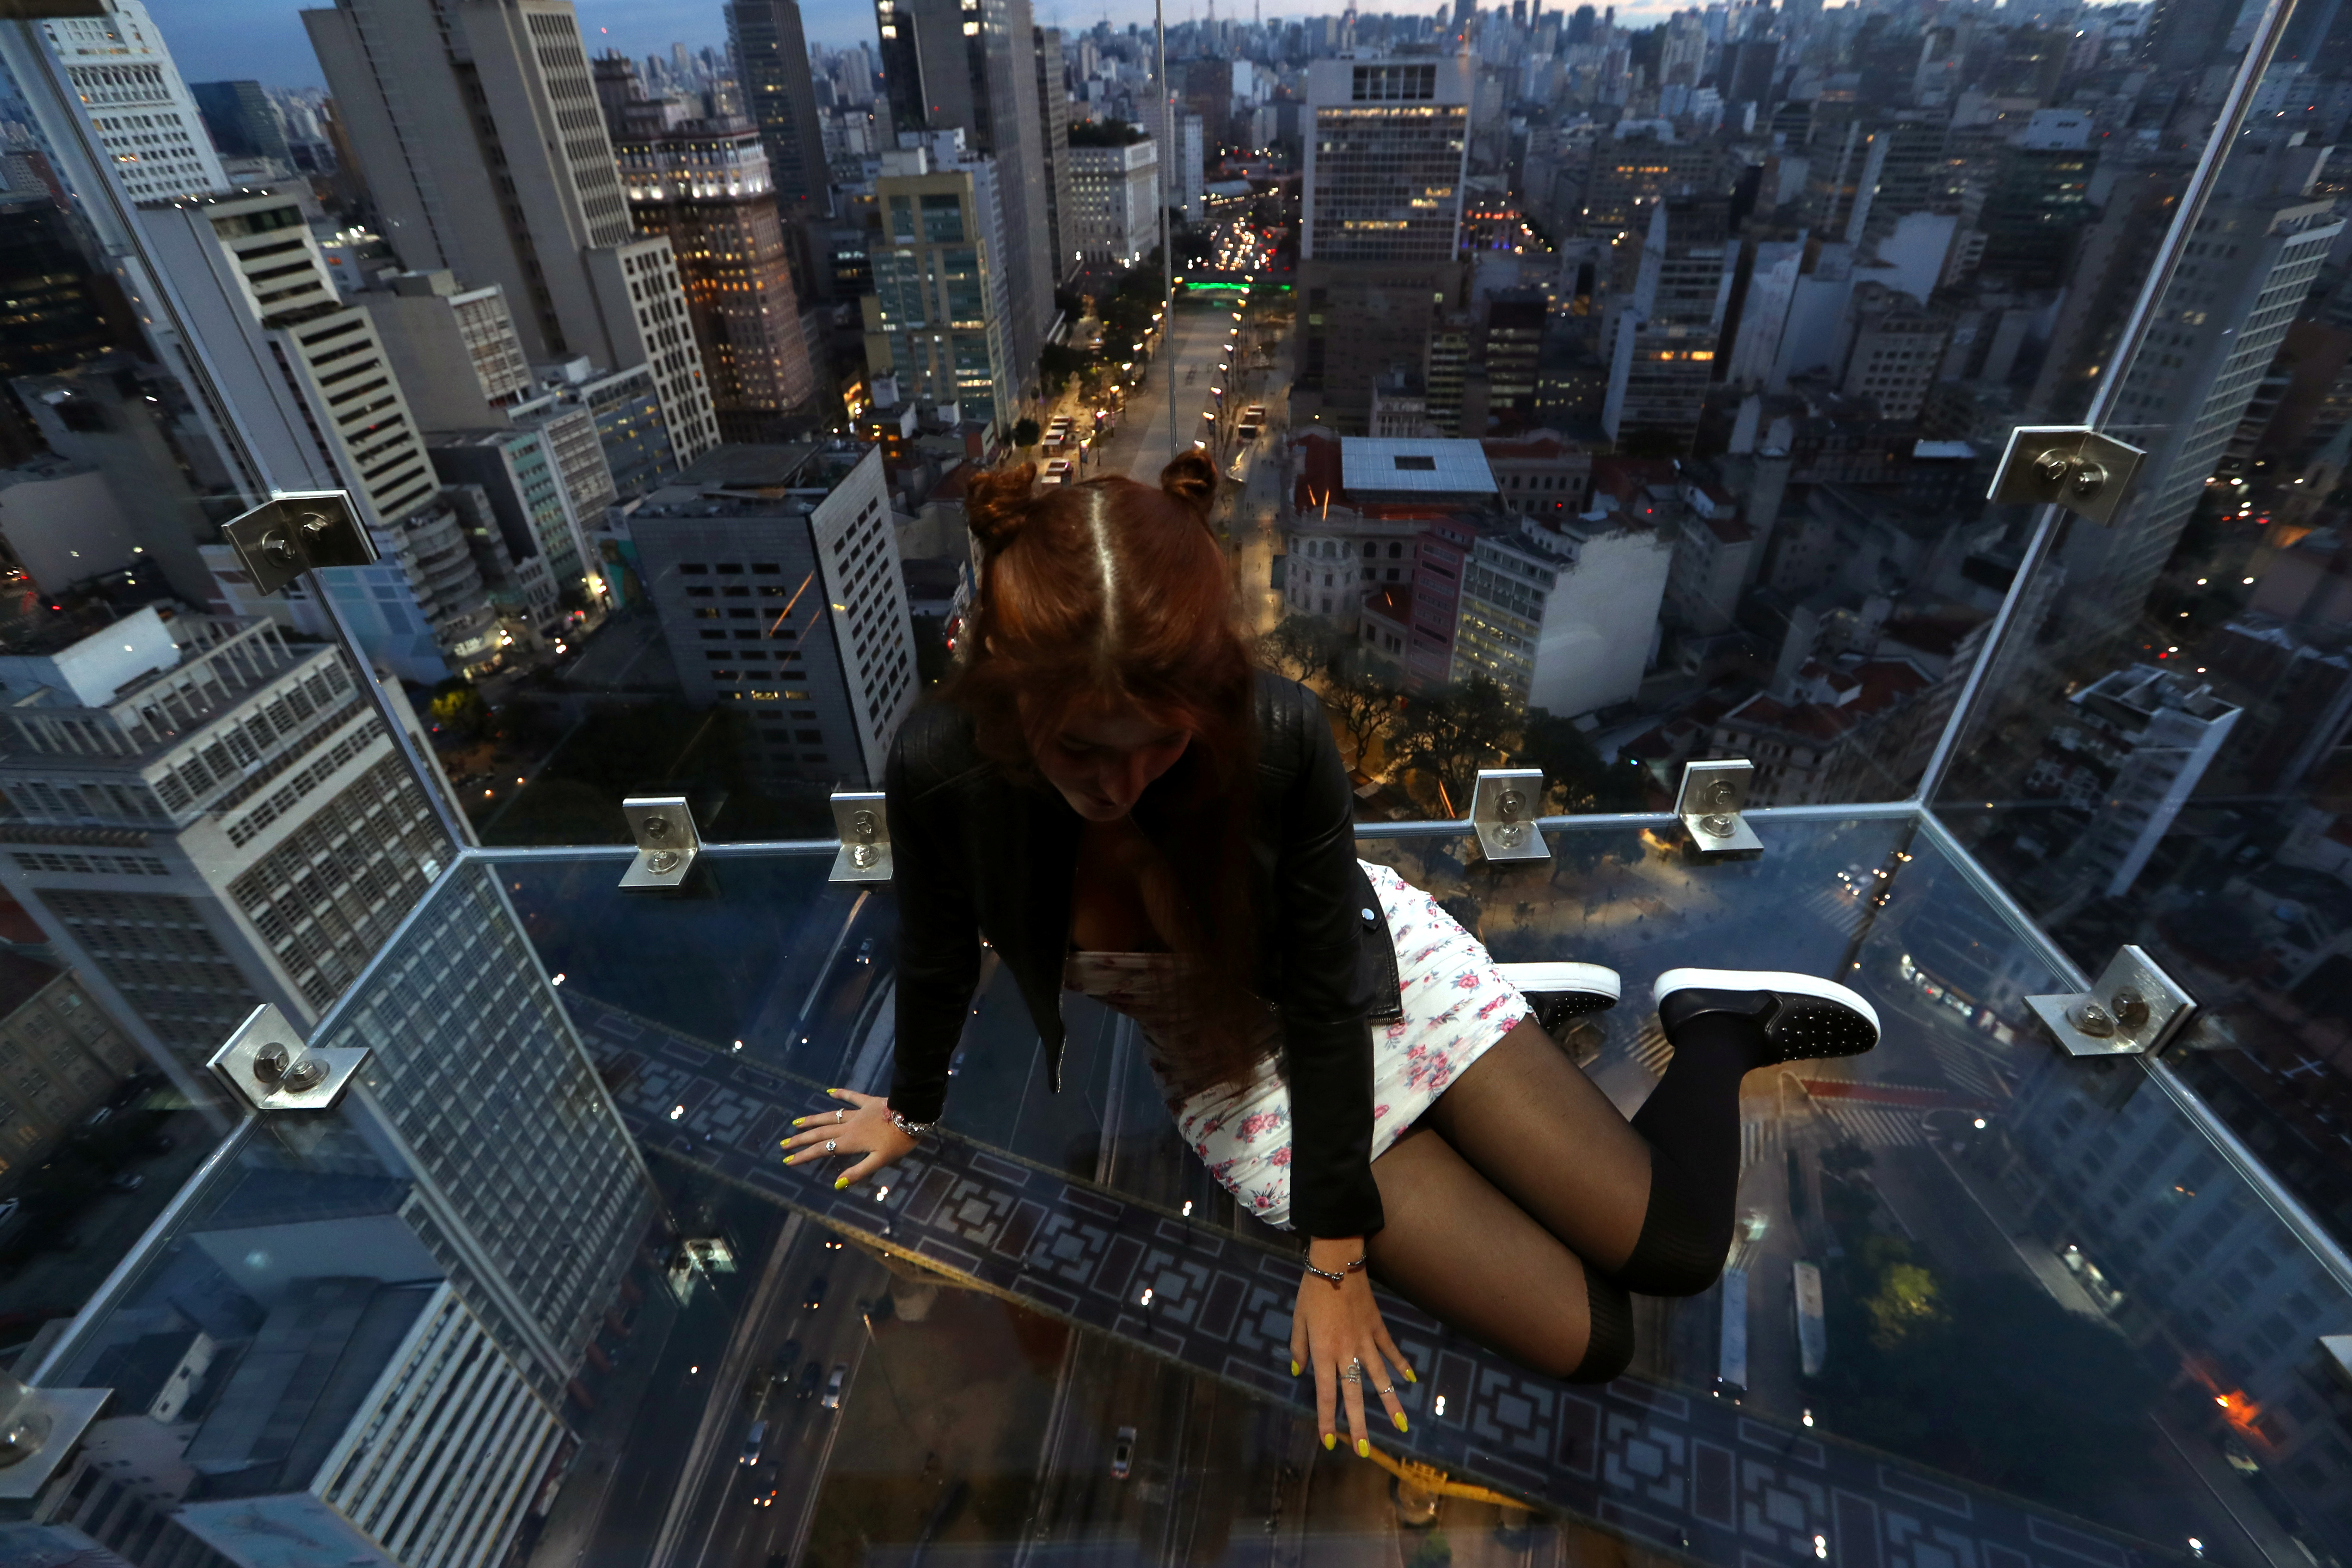 Influencer Marcella Nery sits inside Sampa Sky, a reinforced glass box that protrudes beyond the building and allows to see not only the horizon, but also the ground below your feet, in downtown Sao Paulo, Brazil, August 3, 2021. REUTERS/Amanda Perobelli